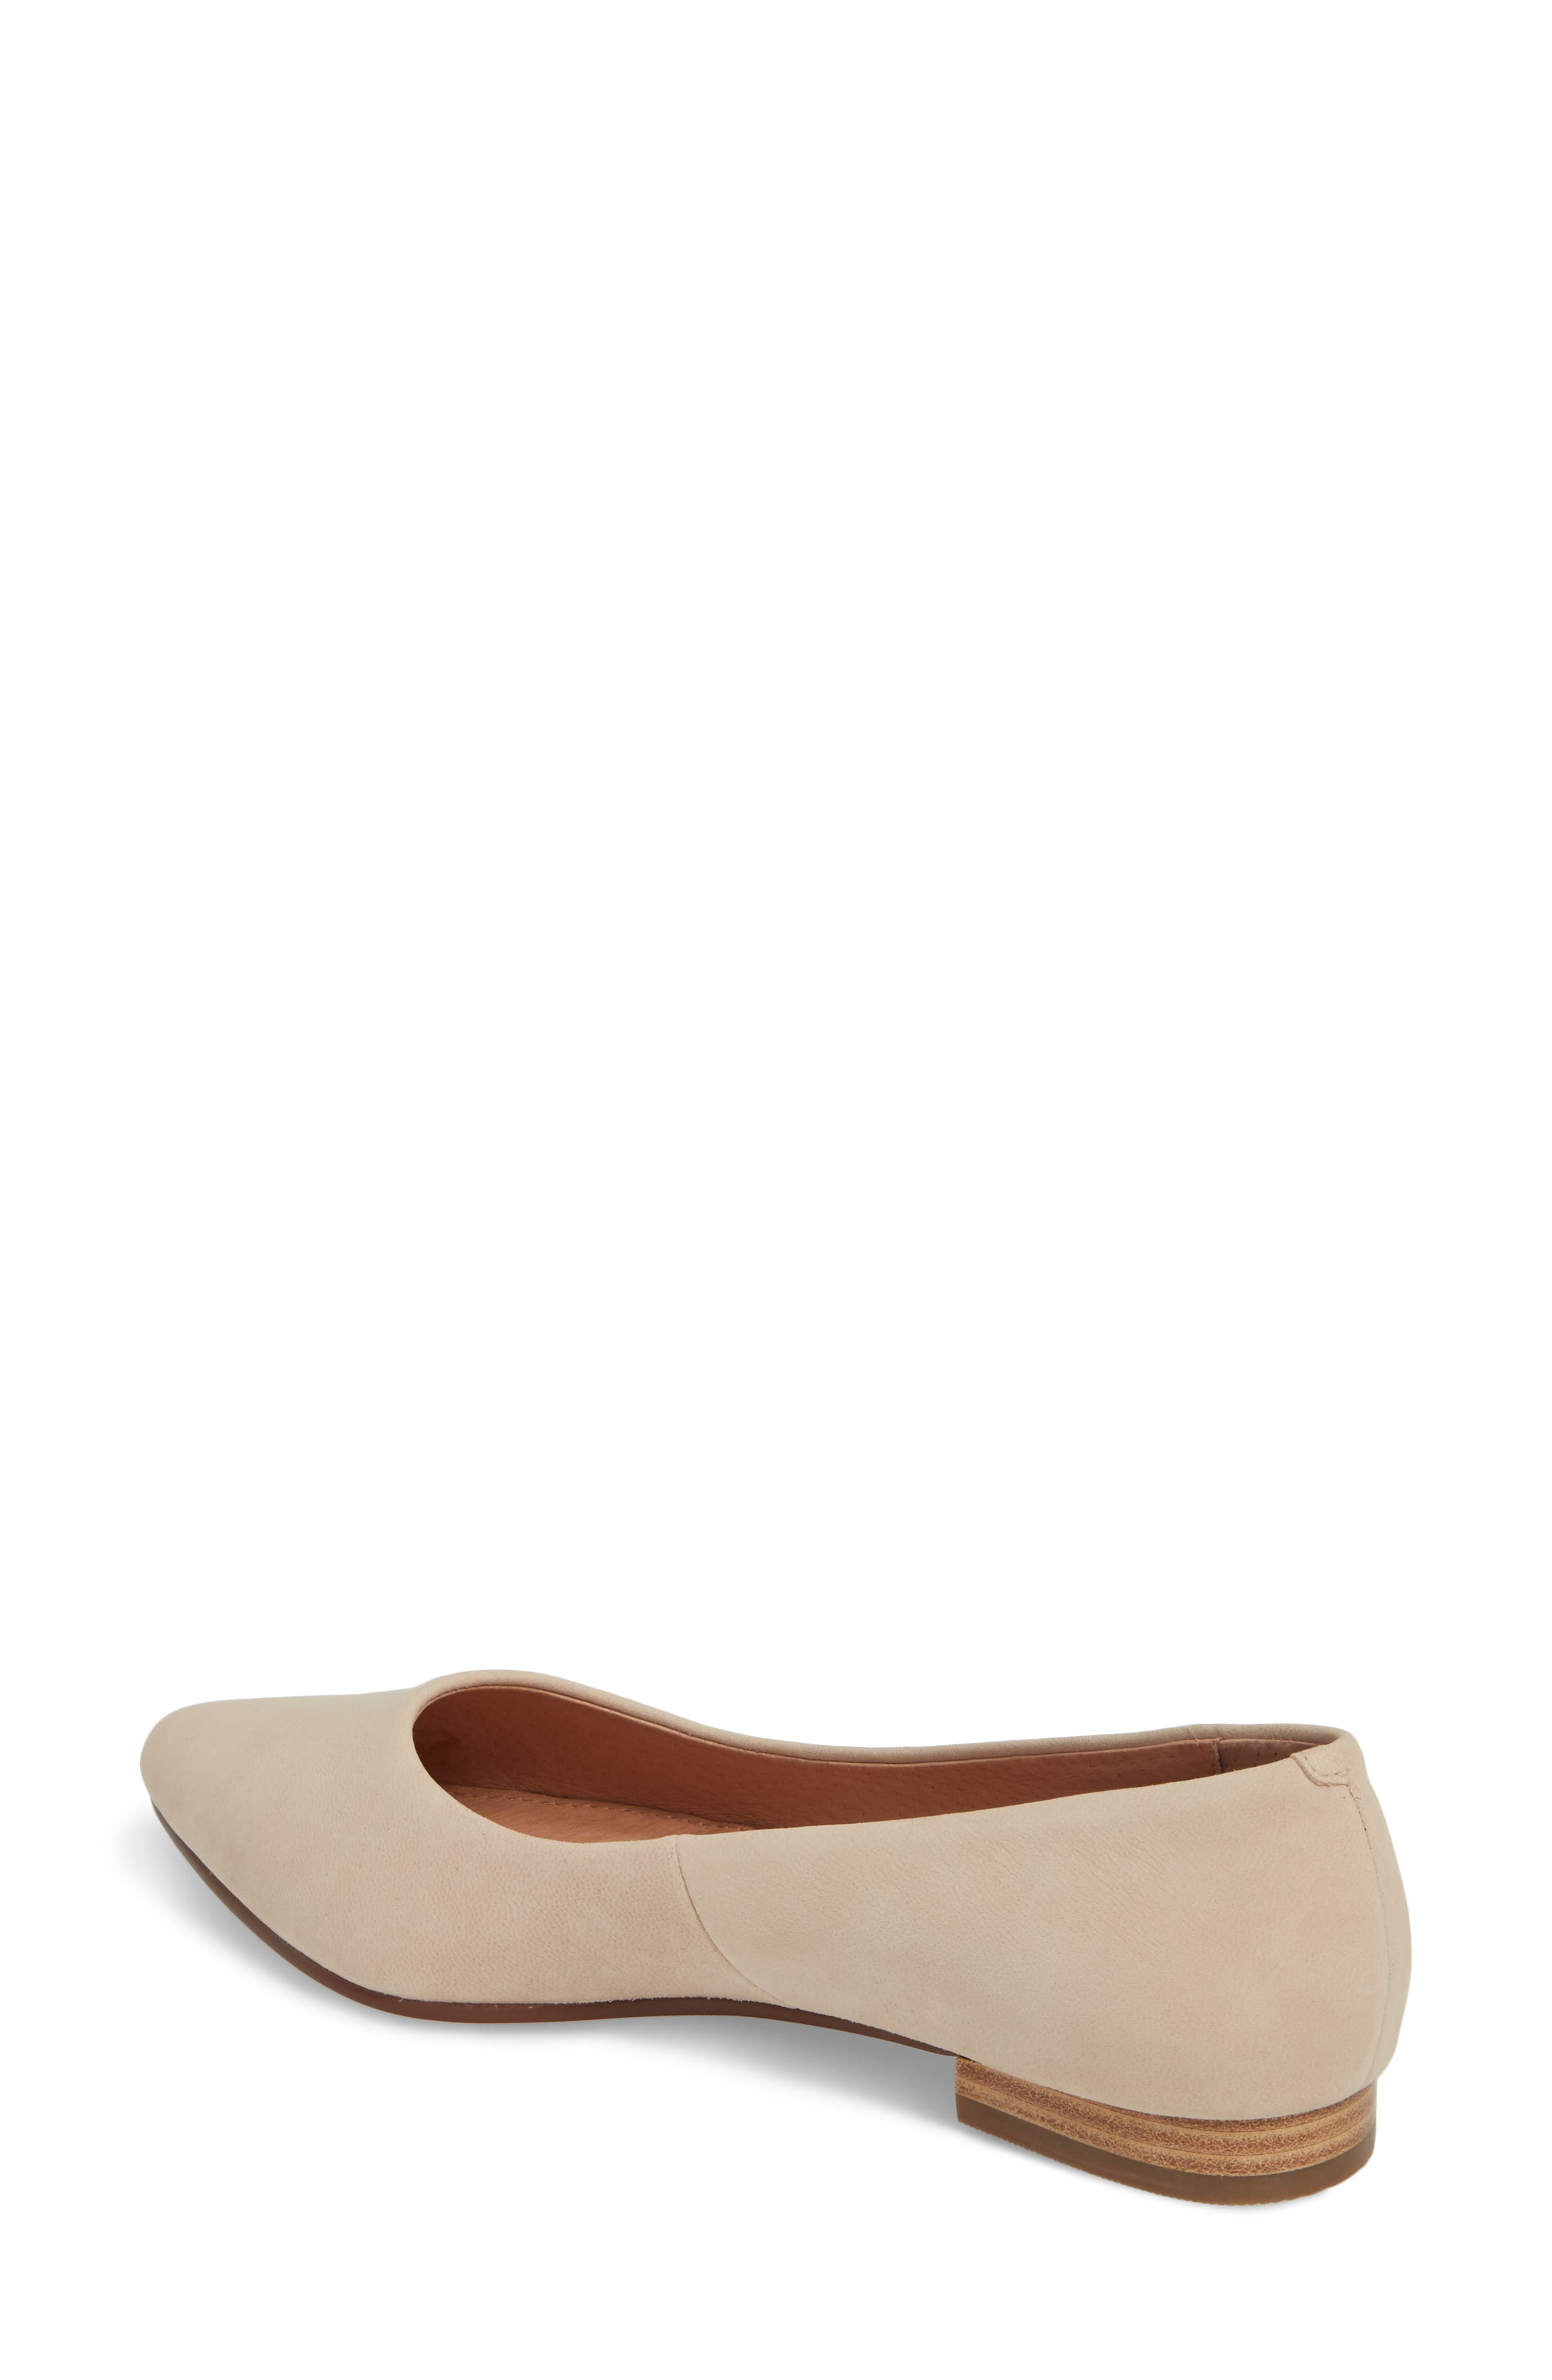 Luna Pointy Toe Flat,                             Alternate thumbnail 2, color,                             Nude Nubuck